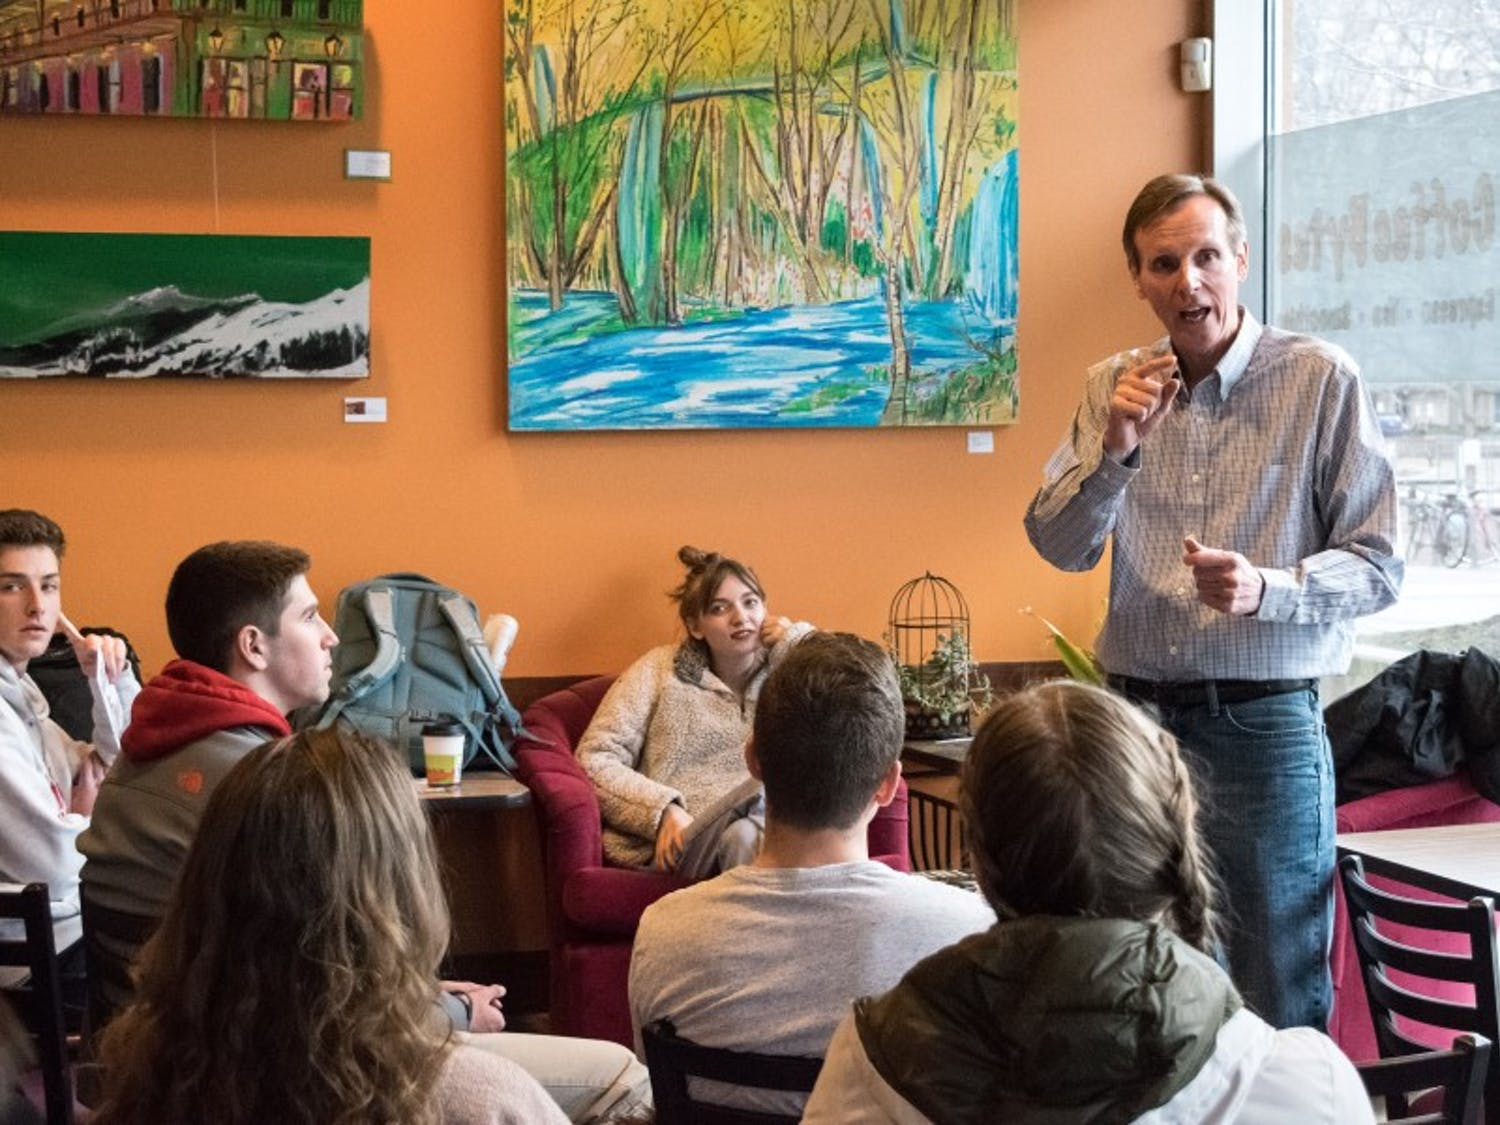 The UW-Madison College Democrats hosted gubernatorial candidate and open government activist Mike McCabe on Tuesday to talk to students about the issues central to his campaign.